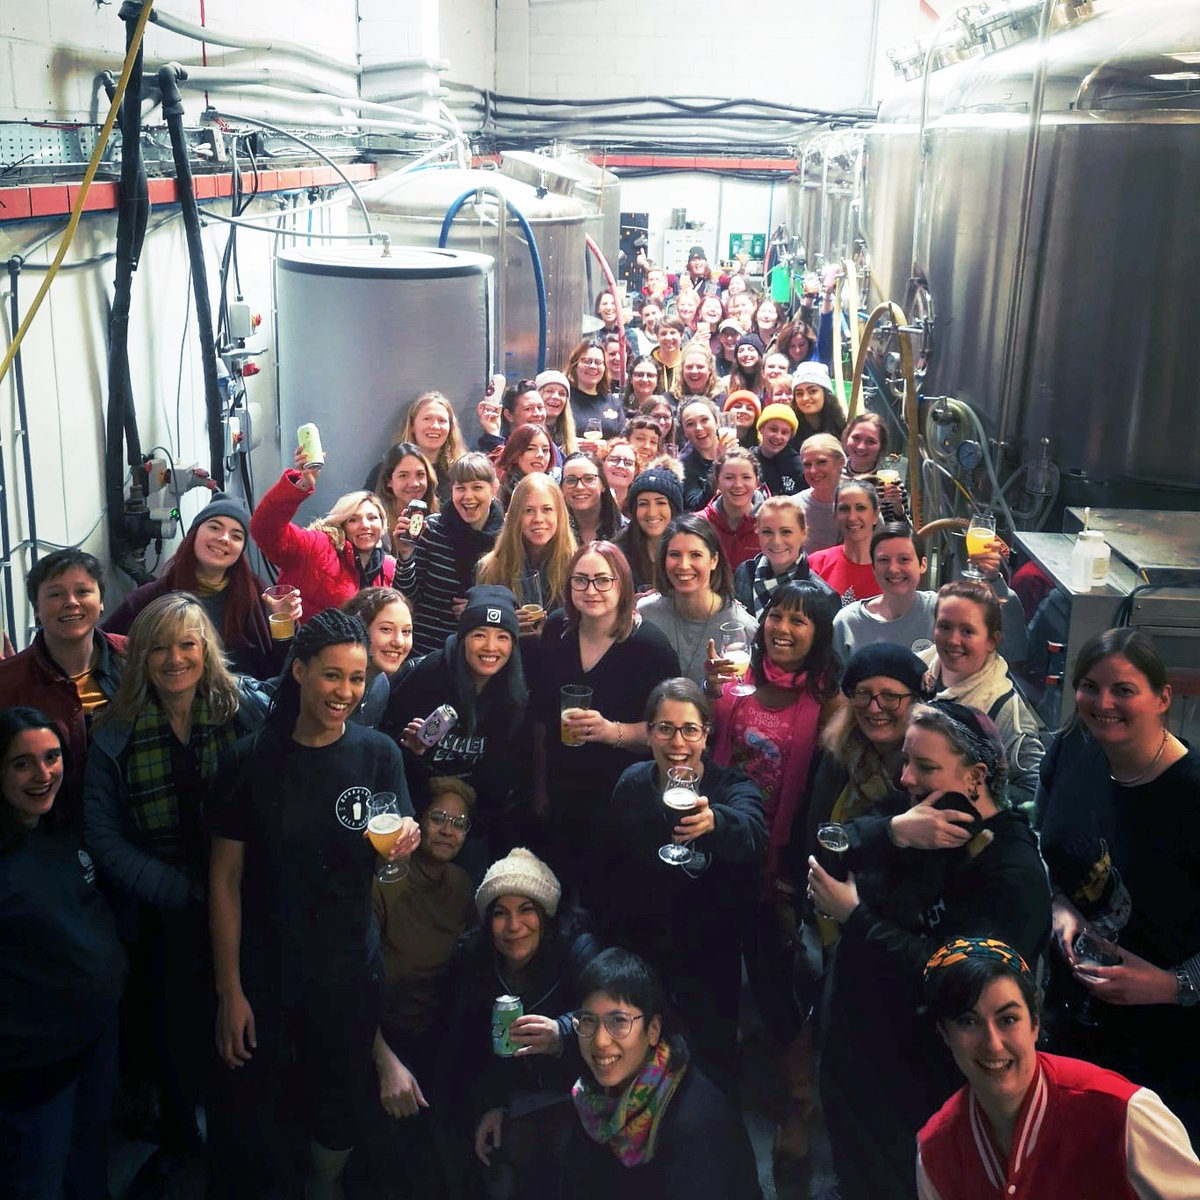 This year's International Women's Day Brew is in tribute to computer programming pioneer Ada Lovelace. Some of the Beer52 team joined the brew day at Wild Card Brewery, full of inspiring women from the industry. #fermentmagazine #beer52 #iwdbrew #internationalwomensday2020 pic.twitter.com/rVt2g6yQEk